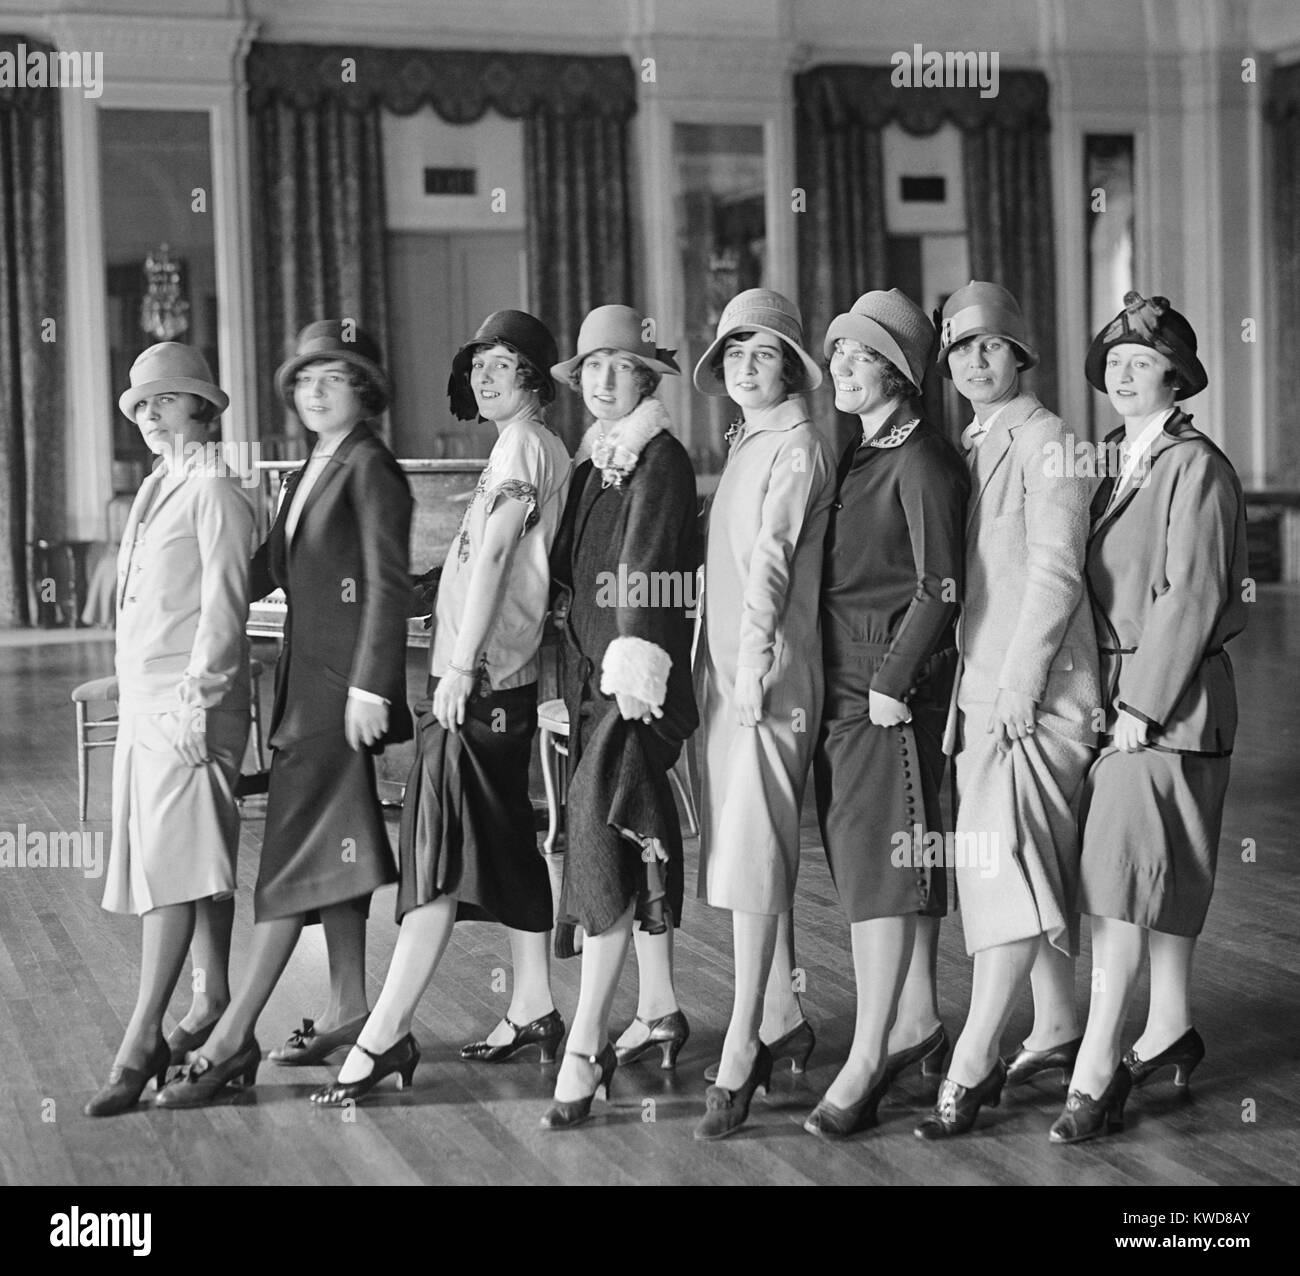 'Washington Debs' rehearsing for comedy March 25, 1923. Washington, D.C. vicinity (BSLOC_2015_17_211) - Stock Image